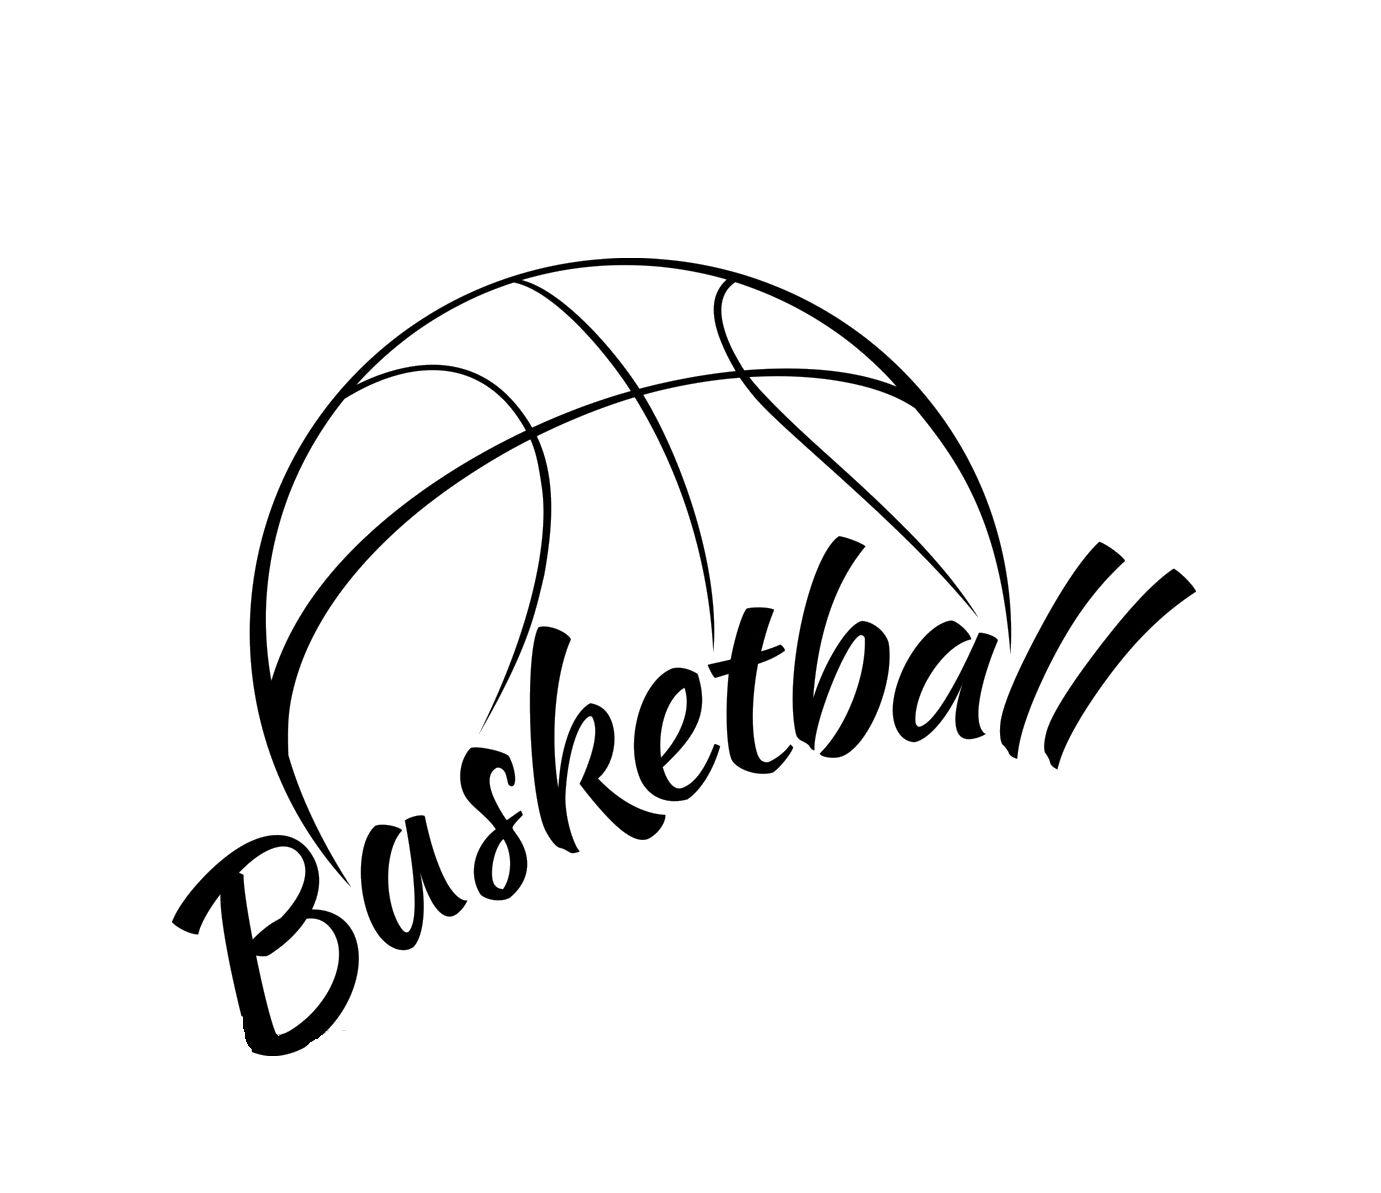 Basketball black white clipart svg transparent Basketball Stock photography Clip art - basketball 1381*1193 ... svg transparent